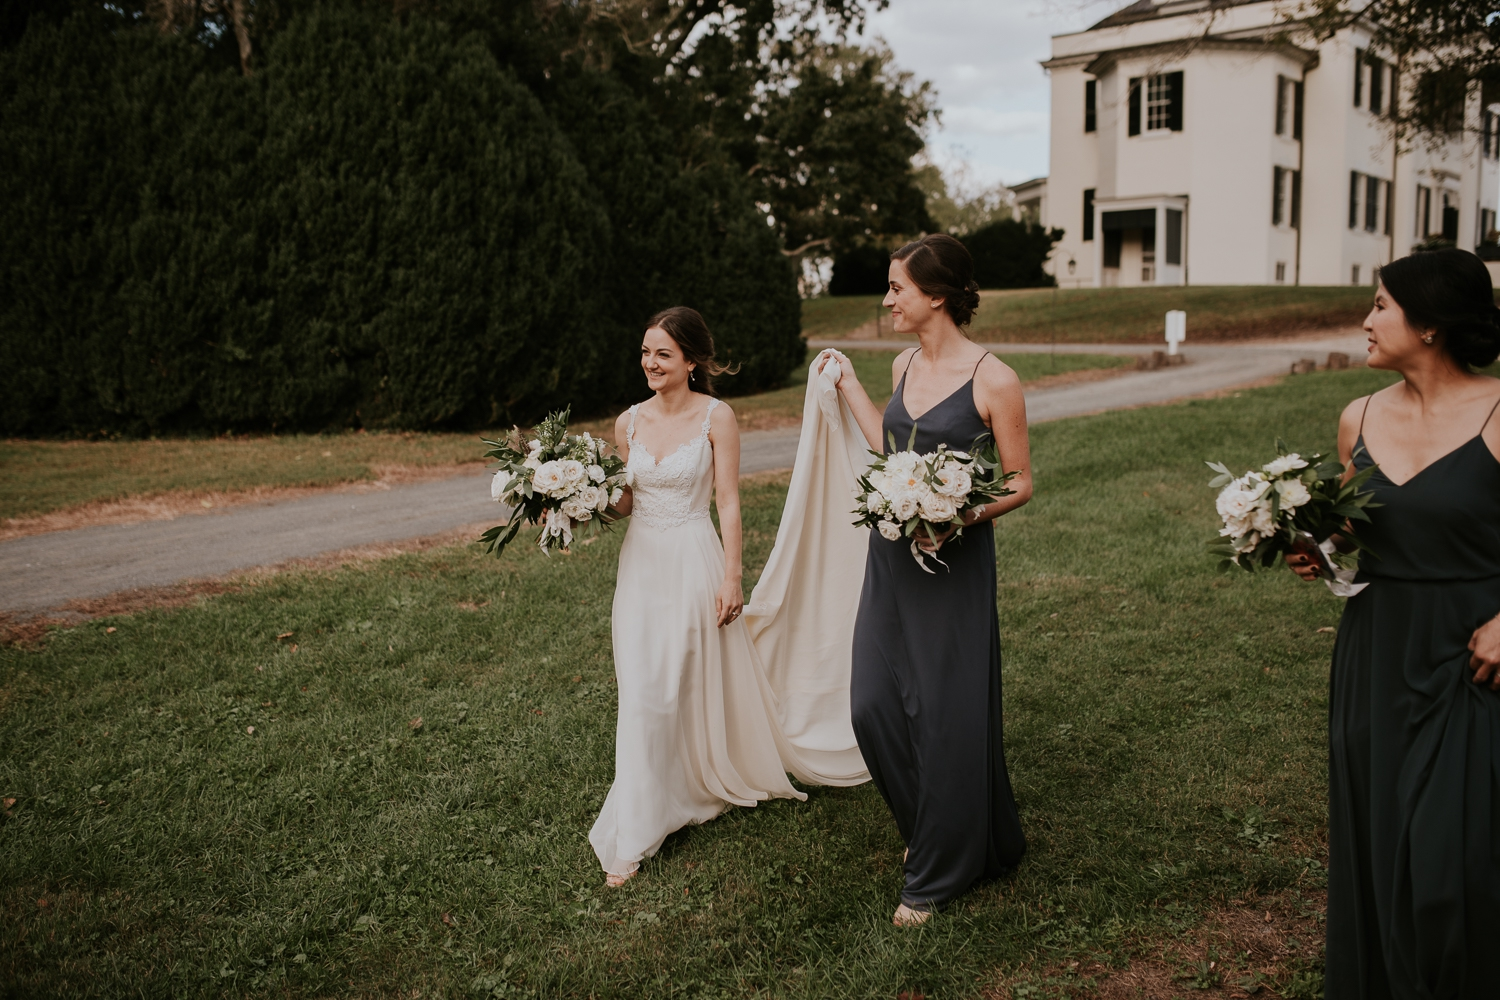 leesburg-virginia-oatlands-historic-house-wedding-photographer-planner-vendors 24.jpg